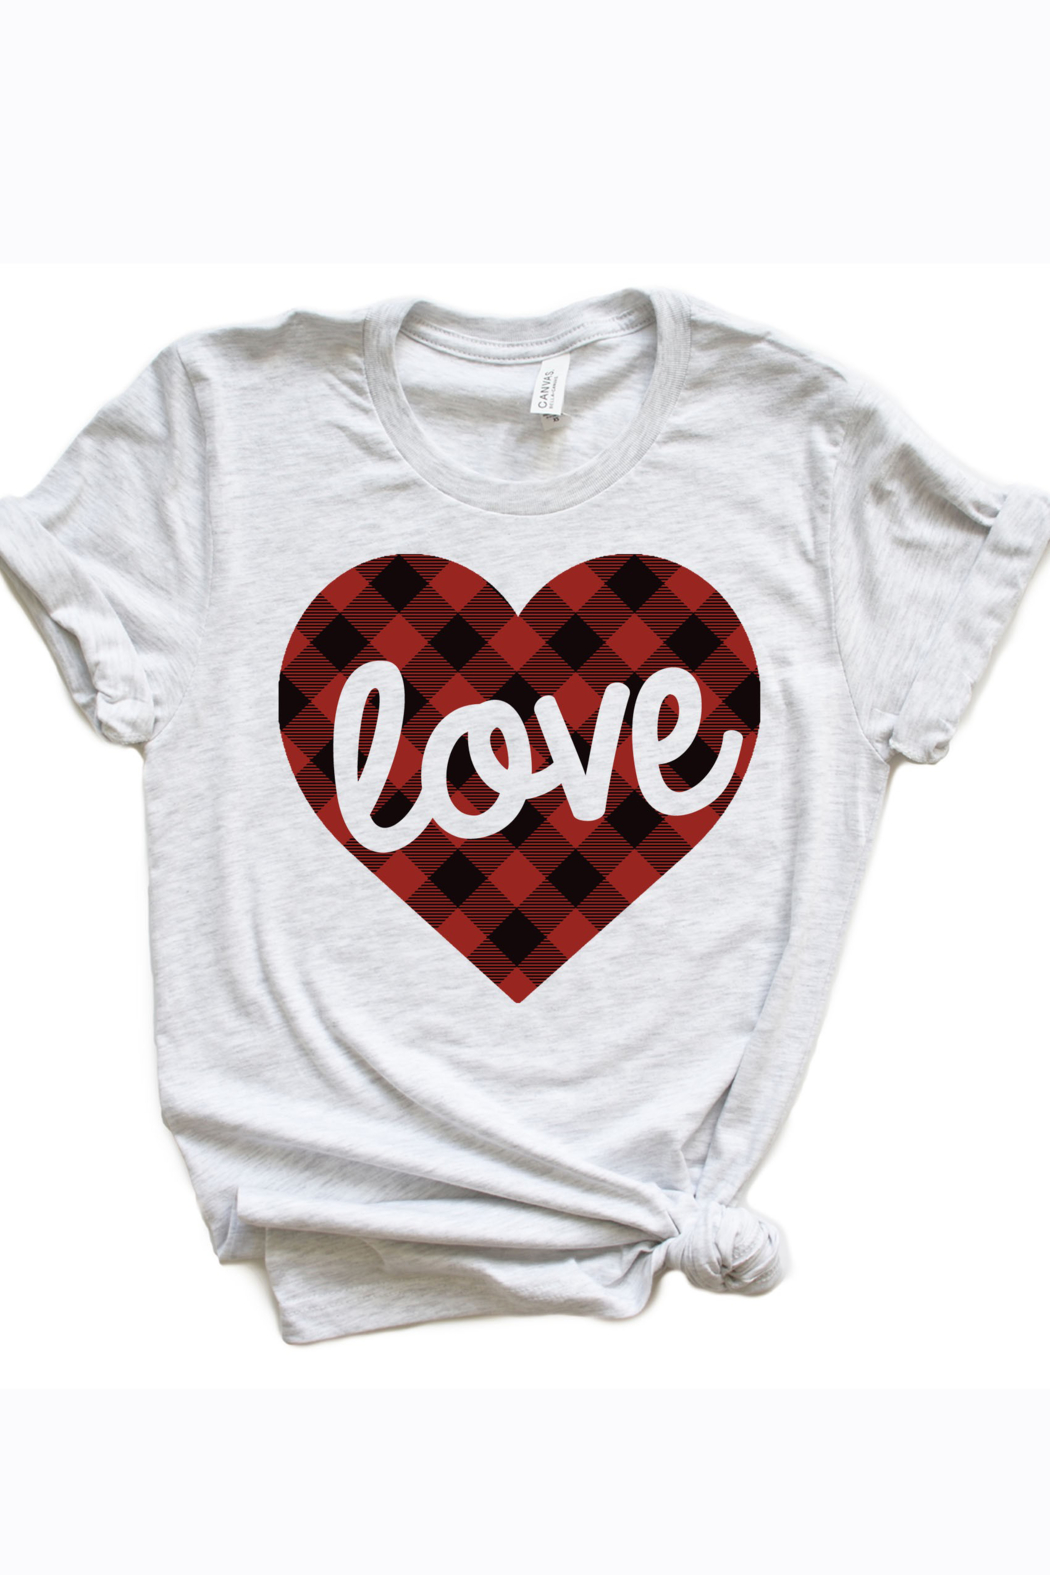 kissed Apparel LOVE Plaid Heart Graphic Tee - Main Image